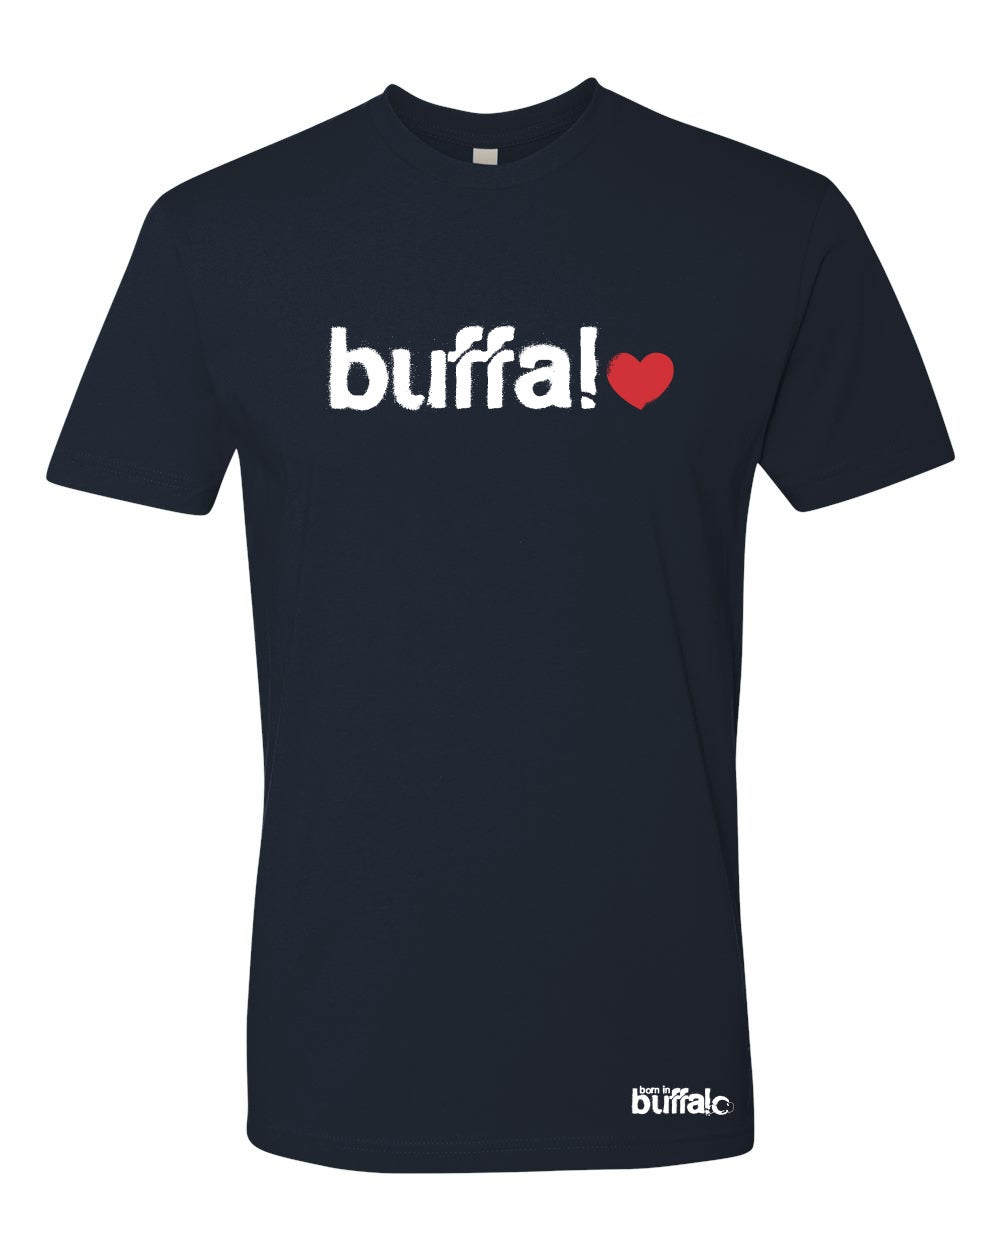 Image of BuffaLOVE